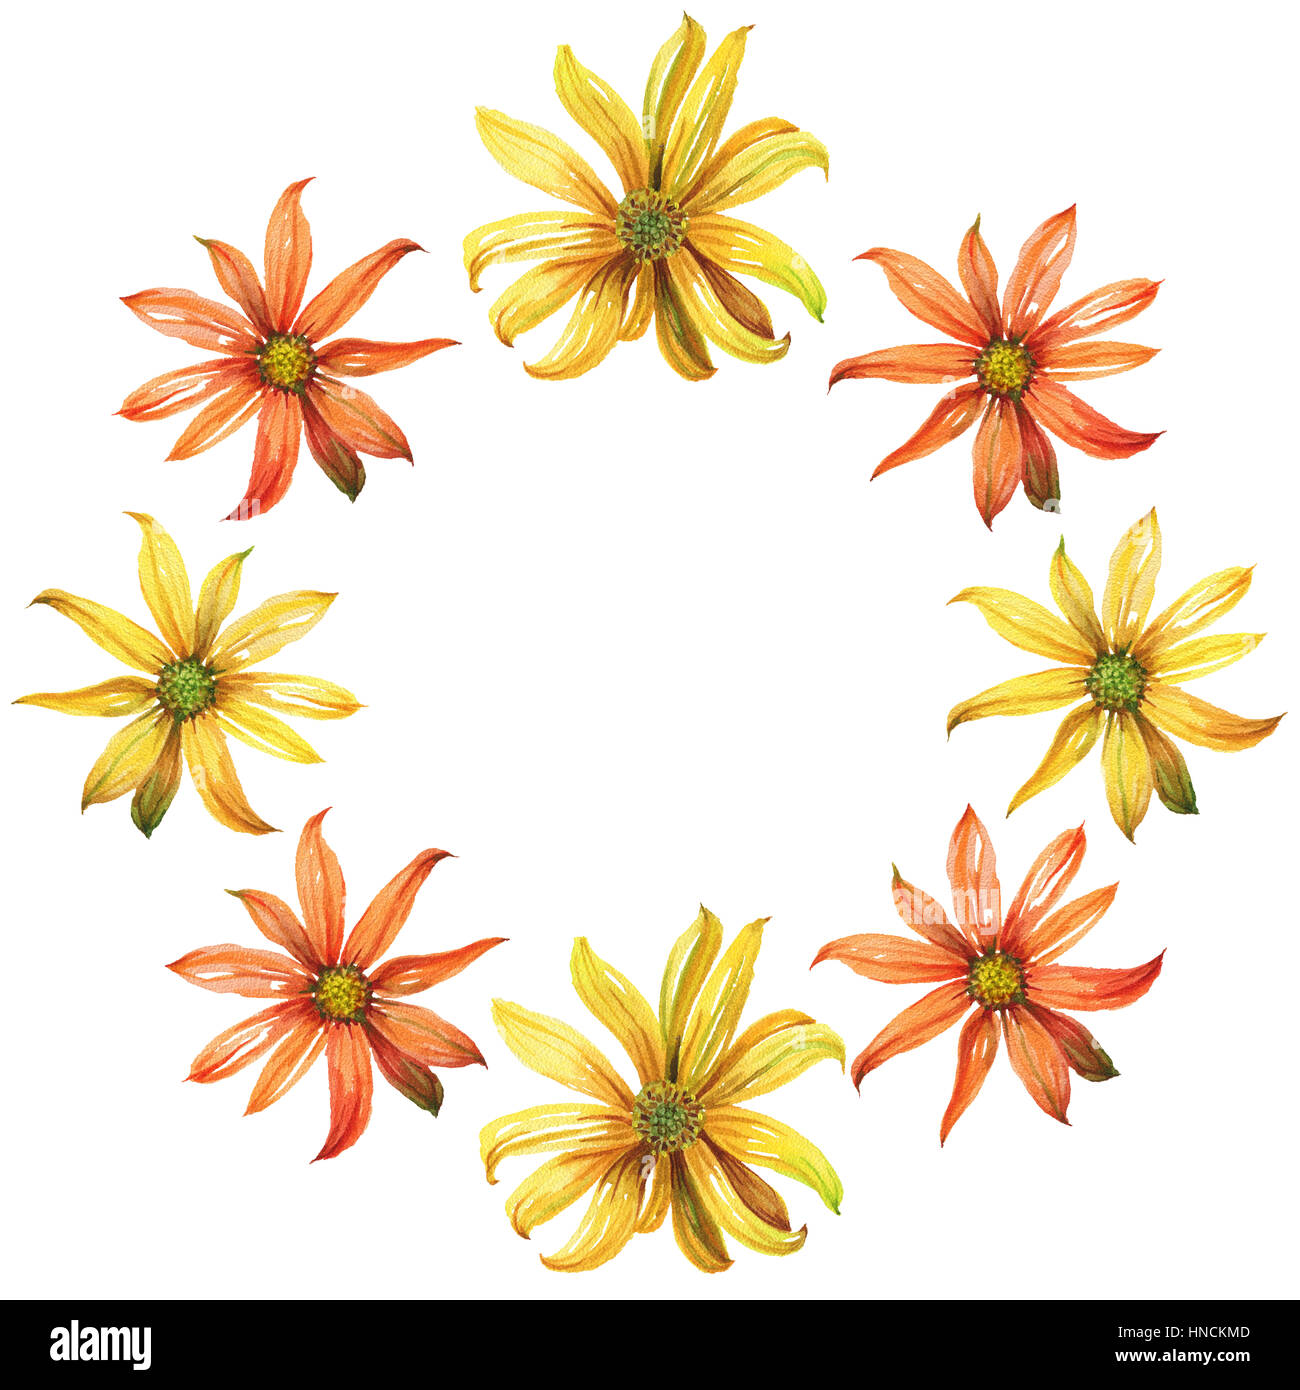 Watercolor Wreath Yellow And Orange Daisy Flowers Stock Photo